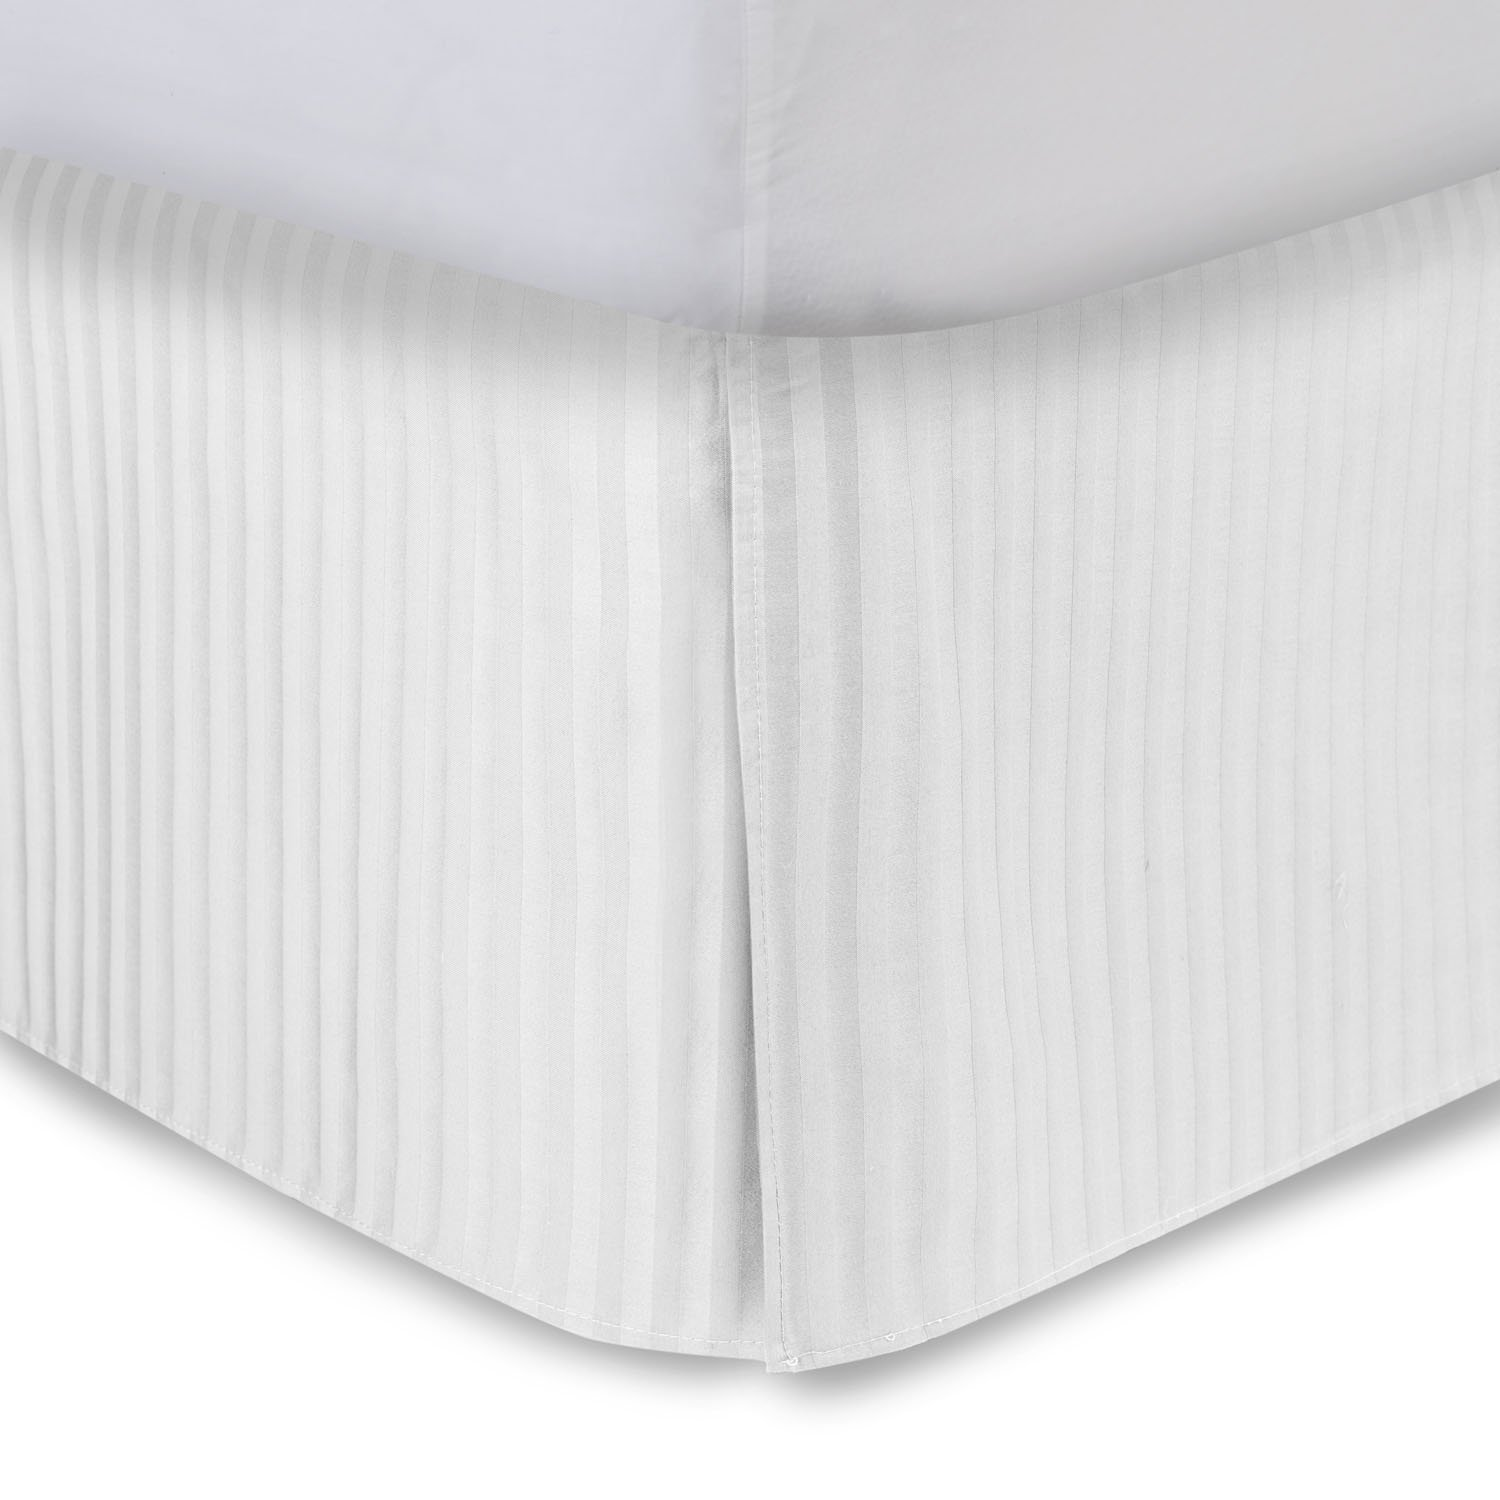 Harmony Lane Tailored Bedskirt with 21'' Drop, King Size, White Sateen Stripe Bed Skirt with Split Corners (Available in All Sizes and 10 Colors)